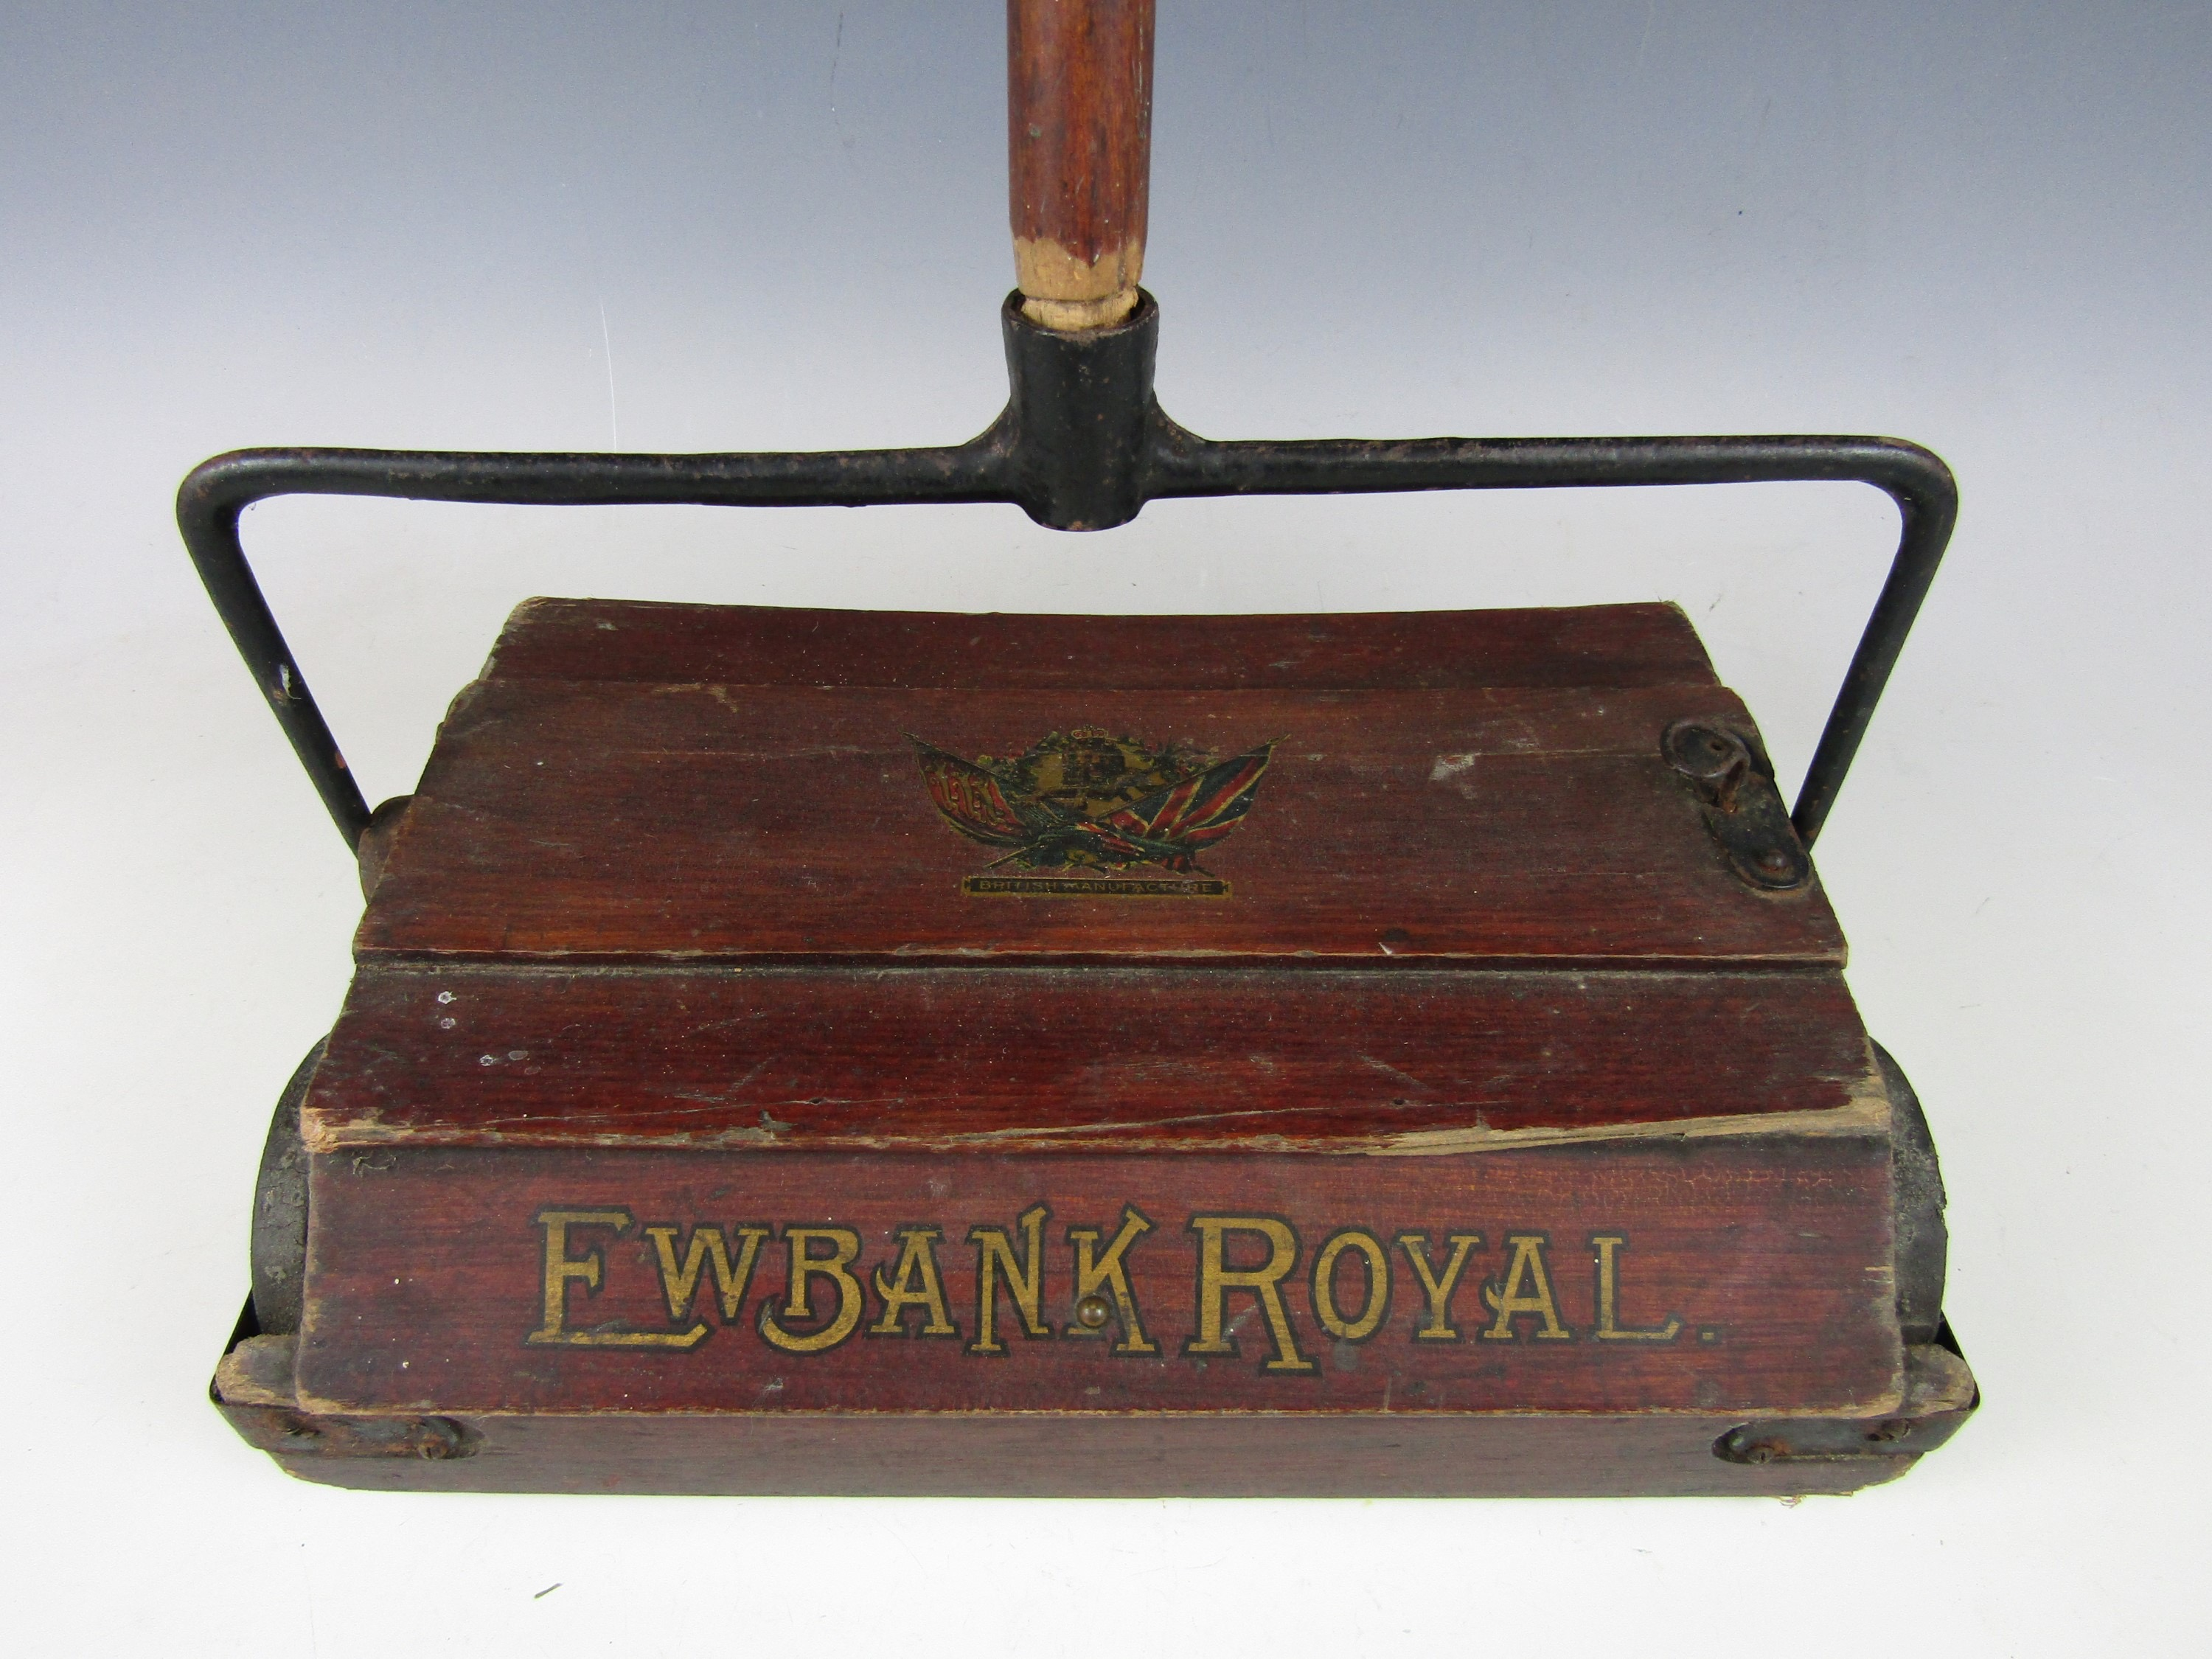 Lot 44 - A 1902 Ewbank Royal carpet sweeper